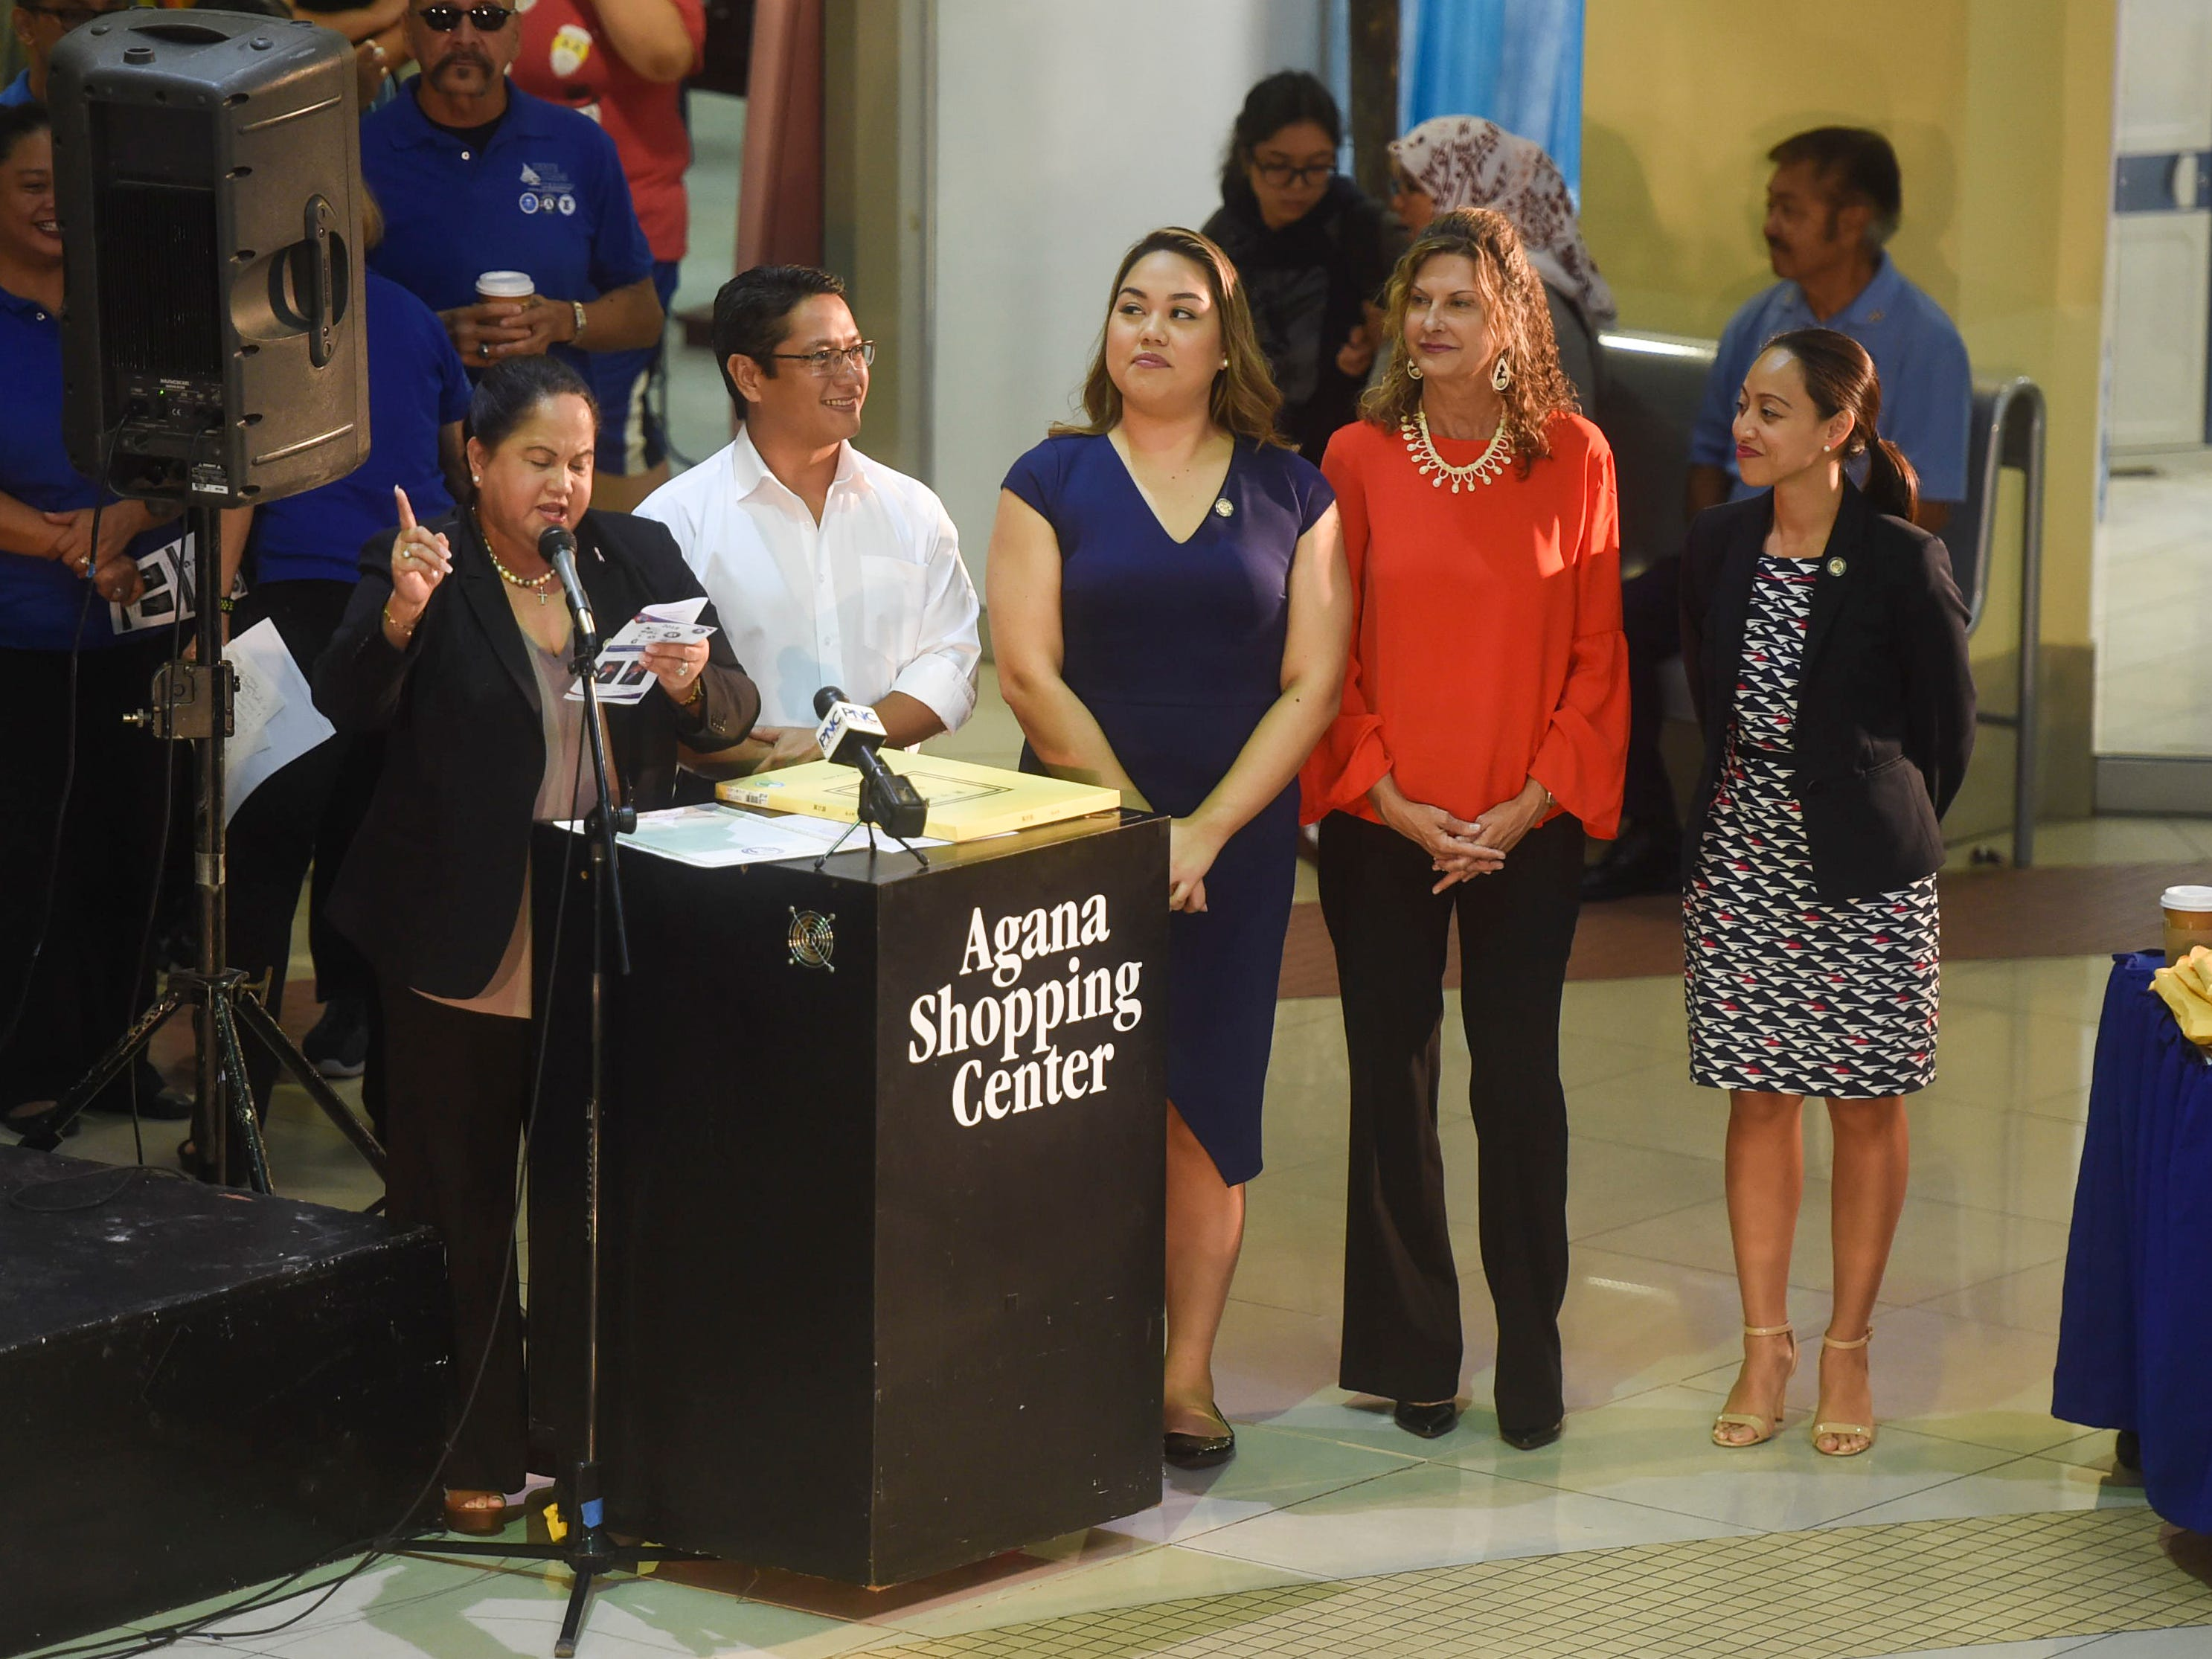 Members of the 35th Guam Legislature stand before a packed rotunda of college and high school volunteers to present Resolution 9-35 (COR) during the 2019 Martin Luther King Jr. Day of Service ceremony in the Agana Shopping Center, Jan. 21, 2019. From left: Speaker Tina Muna Barnes, Sen. Will Castro, Sen. Amanda Shelton, Sen. Kelly G. Marsh-Taitano, and Sen. Regine Biscoe Lee.